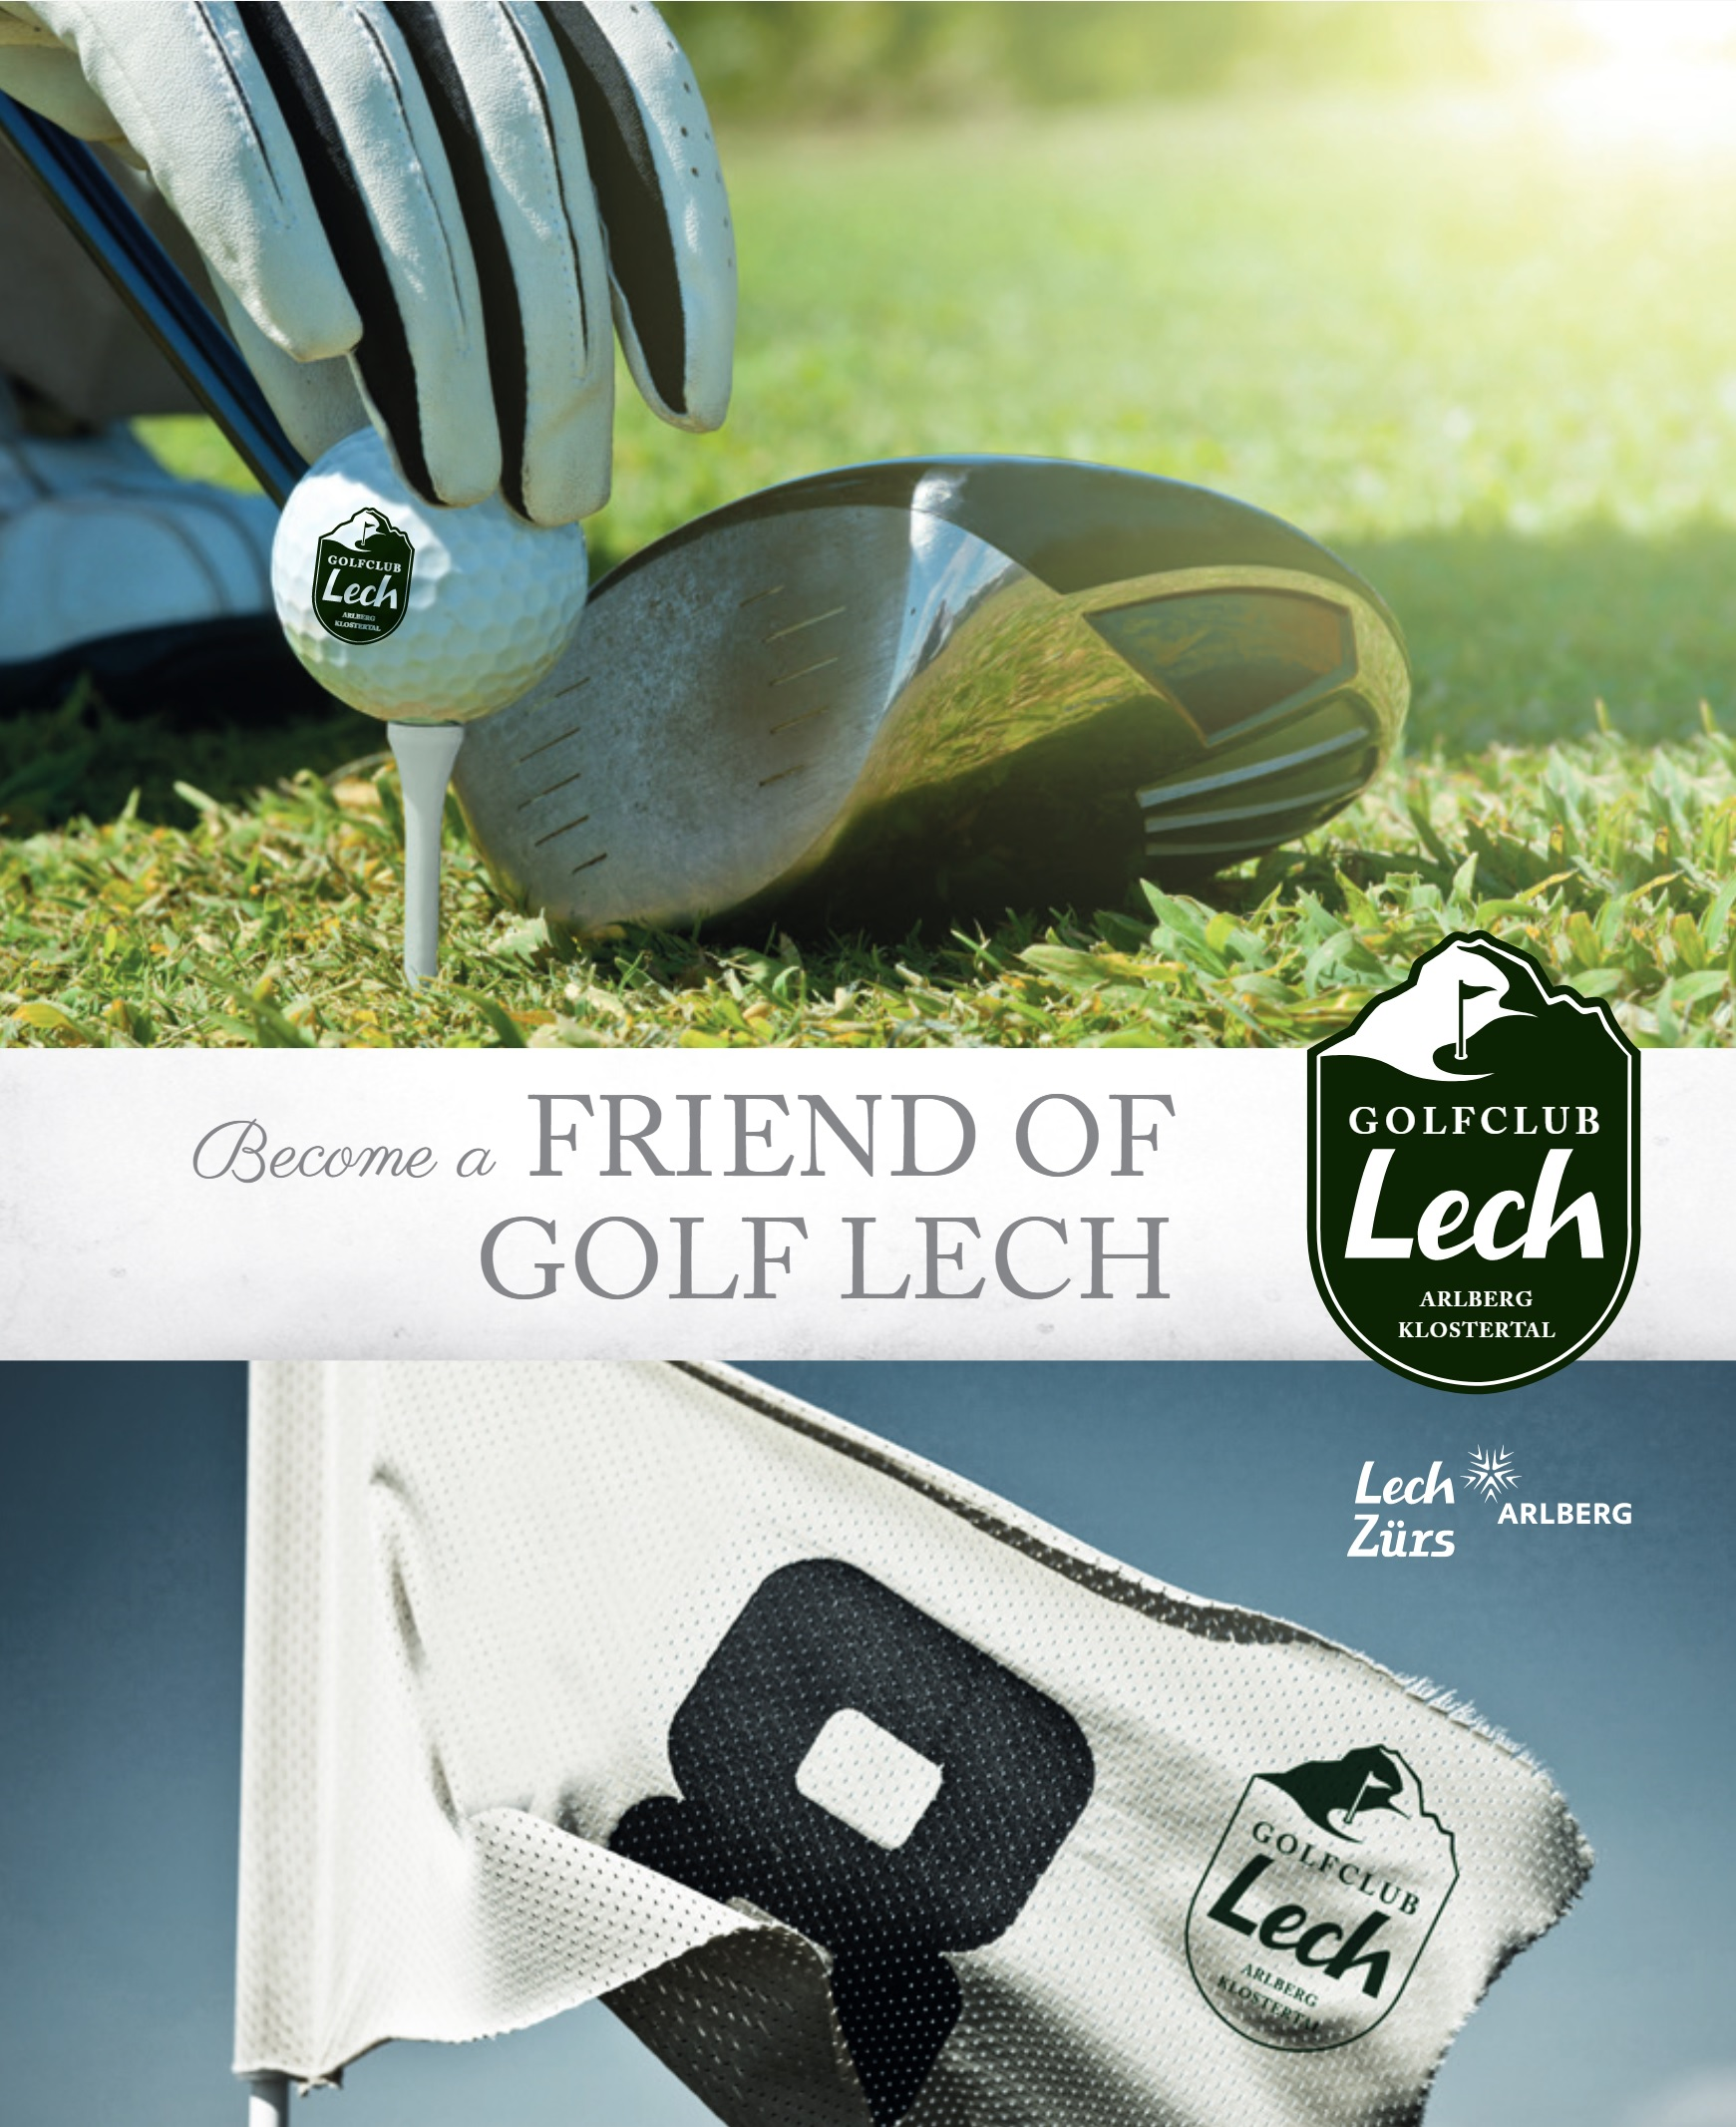 Friends of Golf Lech